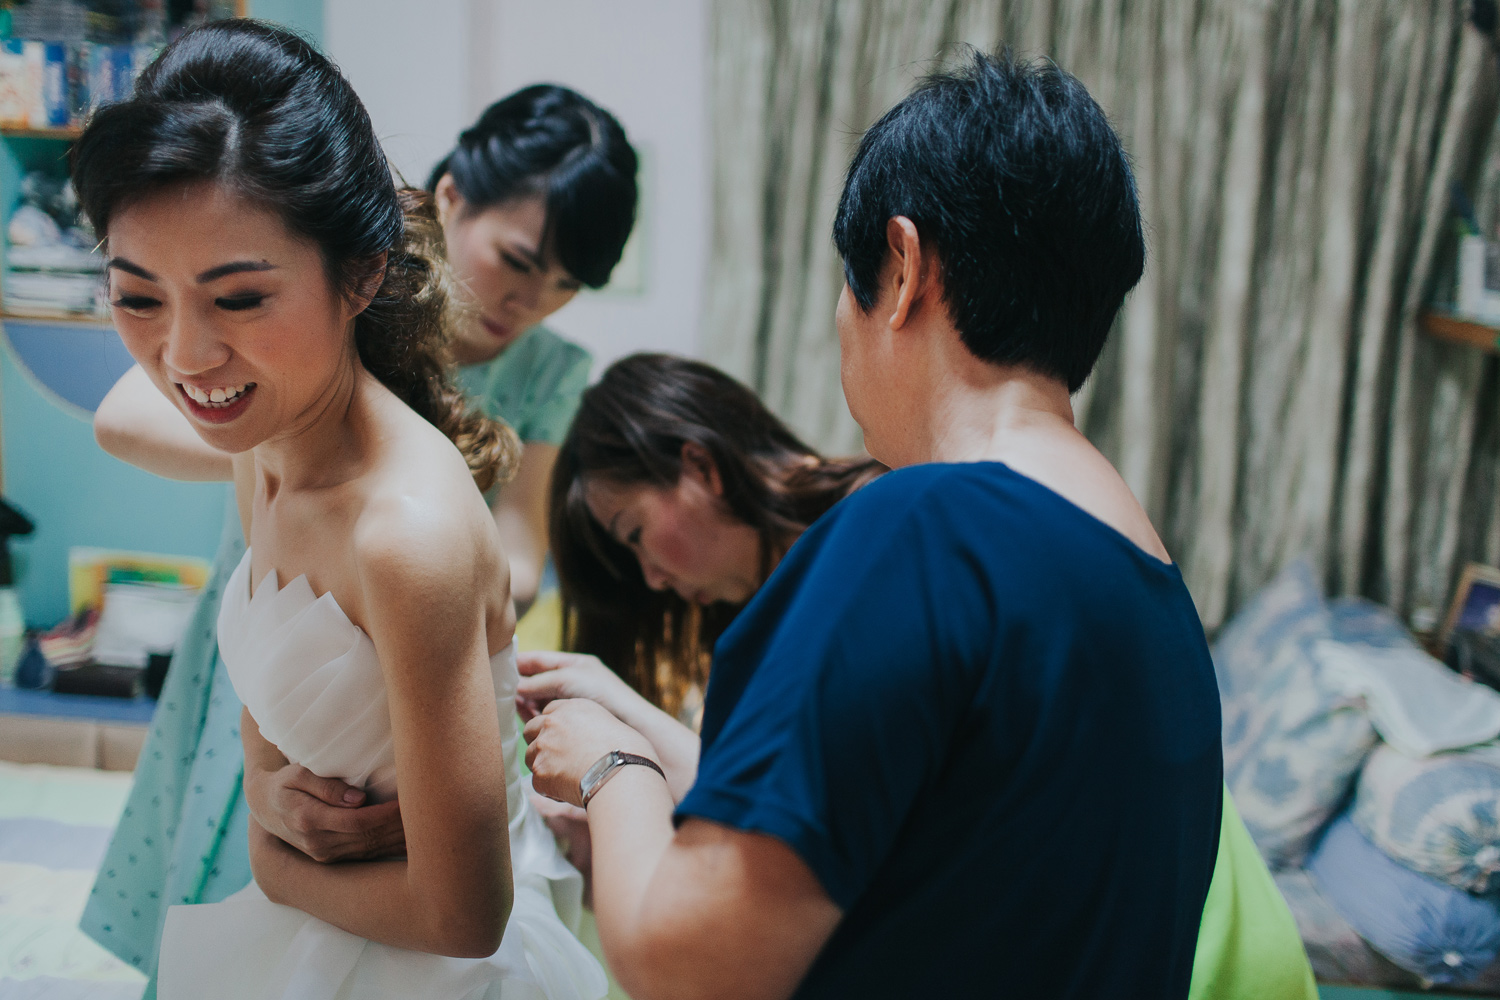 bittersweet photography Singapore wedding photographer jonathan 3